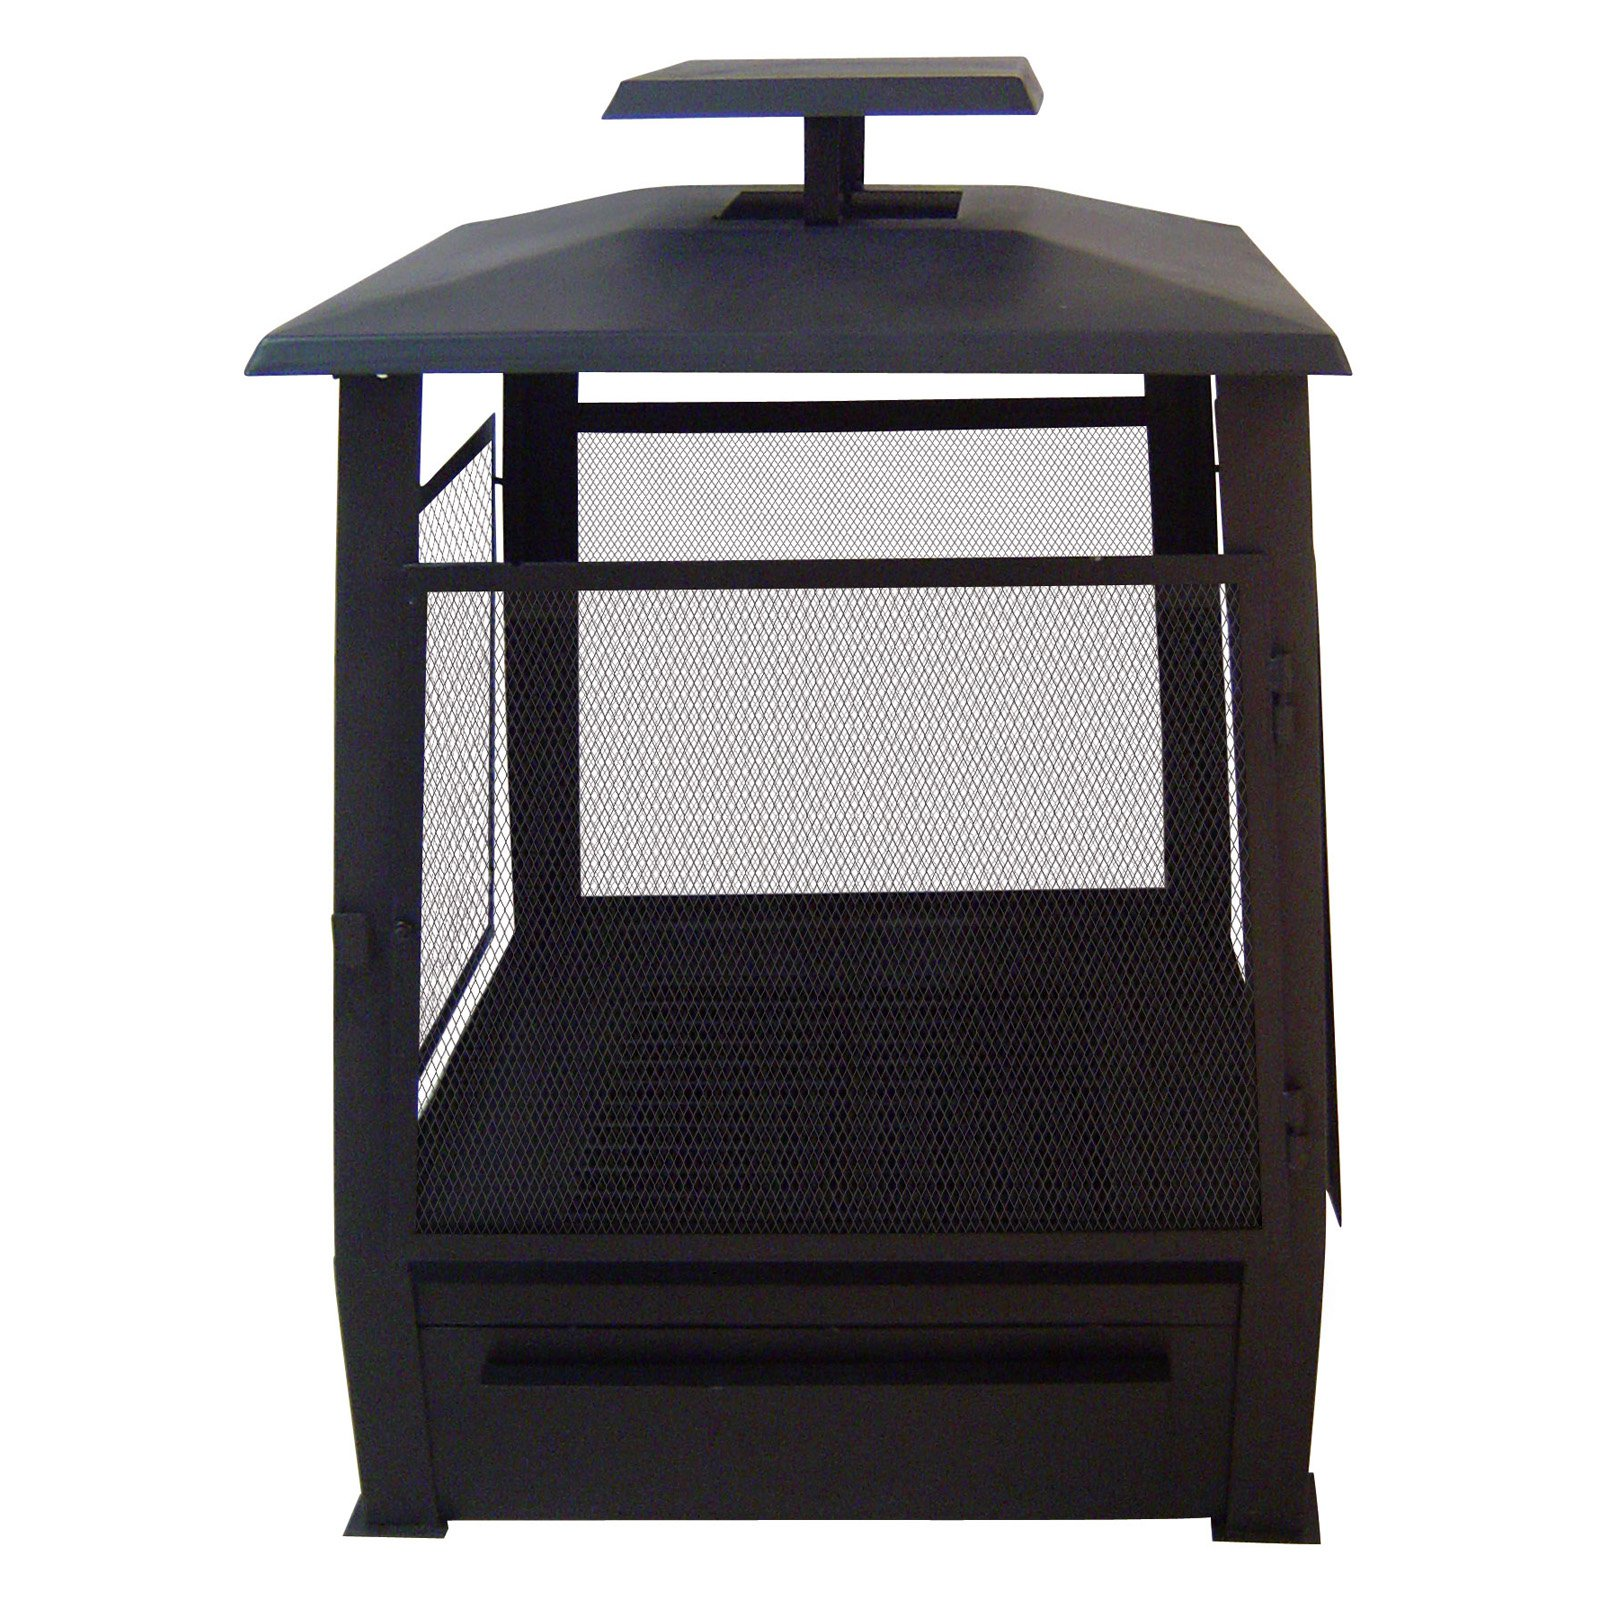 Esschert Design Pagoda Style Terrace Outdoor Fireplace by Esschert Design USA LLC